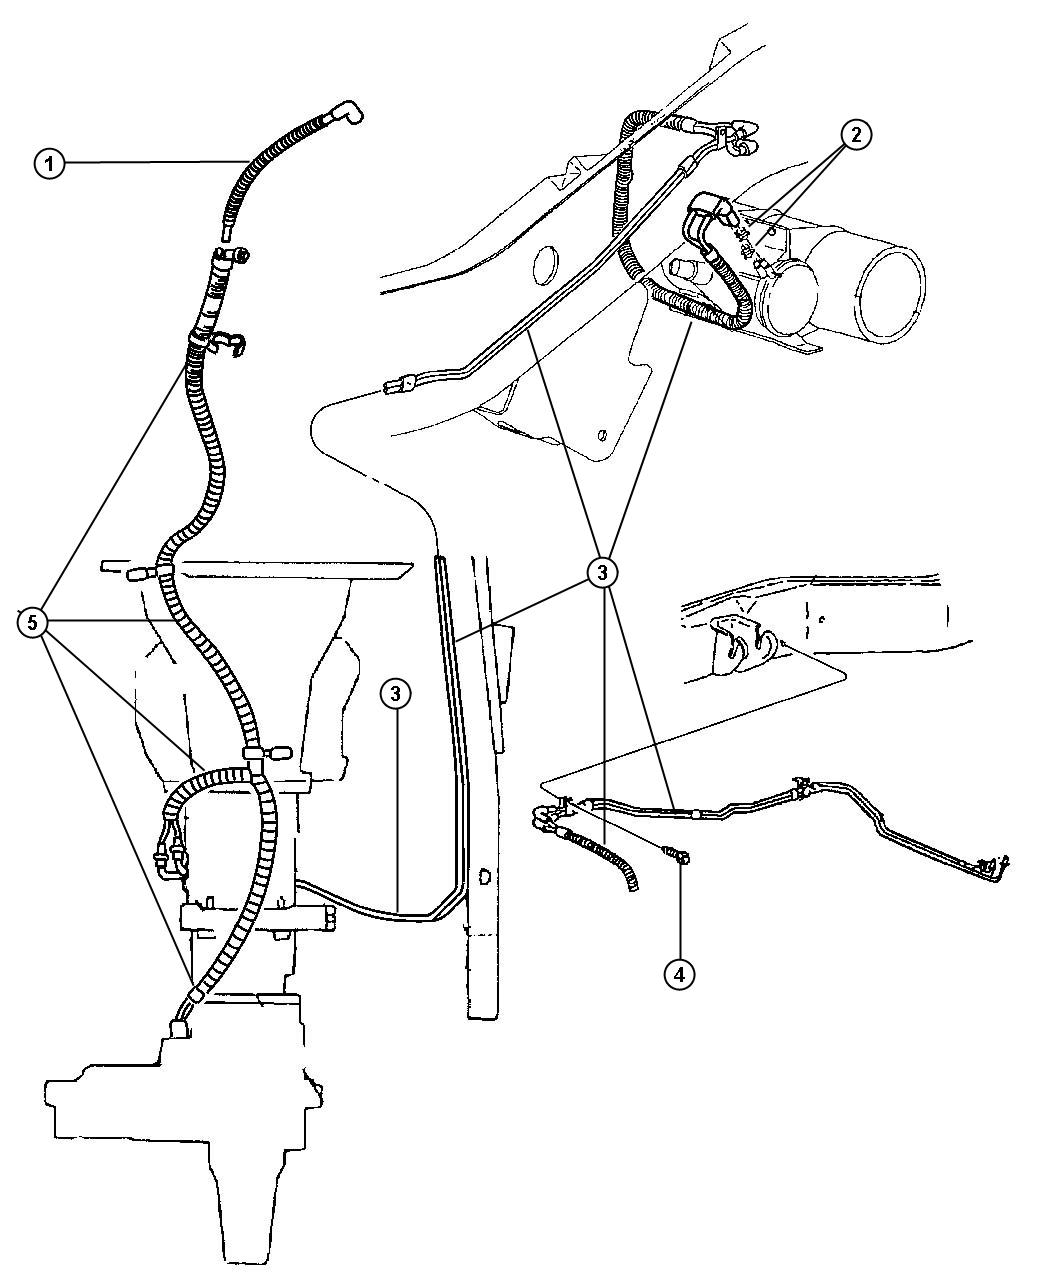 1999 Dodge Ram 1500 Vacuum Lines Front Axle and Transfer Case.